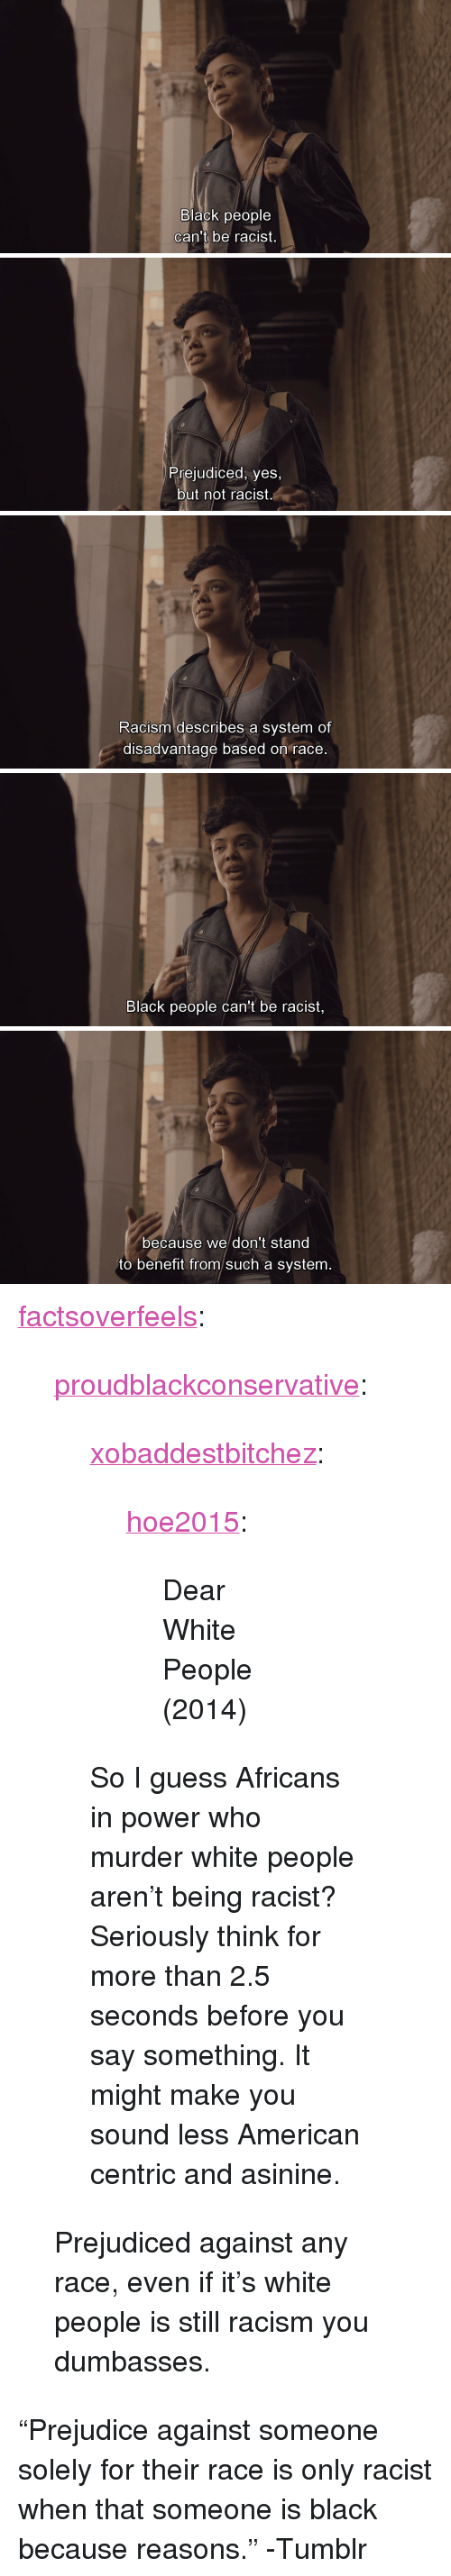 "Racism, Tumblr, and White People: Black people  can't oe racist.   Prejudiced, yes,  but not racist   Racism describes a system of  disadvantage based on race   Black people can't be racist,   because we don't stand  to benefit from such a system. <p><a href=""http://factsoverfeels.tumblr.com/post/127241837411/proudblackconservative-xobaddestbitchez"" class=""tumblr_blog"">factsoverfeels</a>:</p>  <blockquote><p><a href=""http://proudblackconservative.tumblr.com/post/127219129379/xobaddestbitchez-hoe2015-dear-white-people"" class=""tumblr_blog"">proudblackconservative</a>:</p>  <blockquote><p><a href=""http://xobaddestbitchez.tumblr.com/post/109150188162/hoe2015-dear-white-people-2014"" class=""tumblr_blog"">xobaddestbitchez</a>:</p> <blockquote> <p><a href=""http://hoe2015.tumblr.com/post/109048320111/dear-white-people-2014"" class=""tumblr_blog"">hoe2015</a>:</p> <blockquote> <p>Dear White People (2014)</p> </blockquote>  </blockquote>  <p>So I guess Africans in power who murder white people aren't being racist? Seriously think for more than 2.5 seconds before you say something. It might make you sound less American centric and asinine.</p></blockquote>  <p>Prejudiced against any race, even if it's white people is still racism you dumbasses.</p></blockquote>  <p>&ldquo;Prejudice against someone solely for their race is only racist when that someone is black because reasons.&rdquo; -Tumblr</p>"